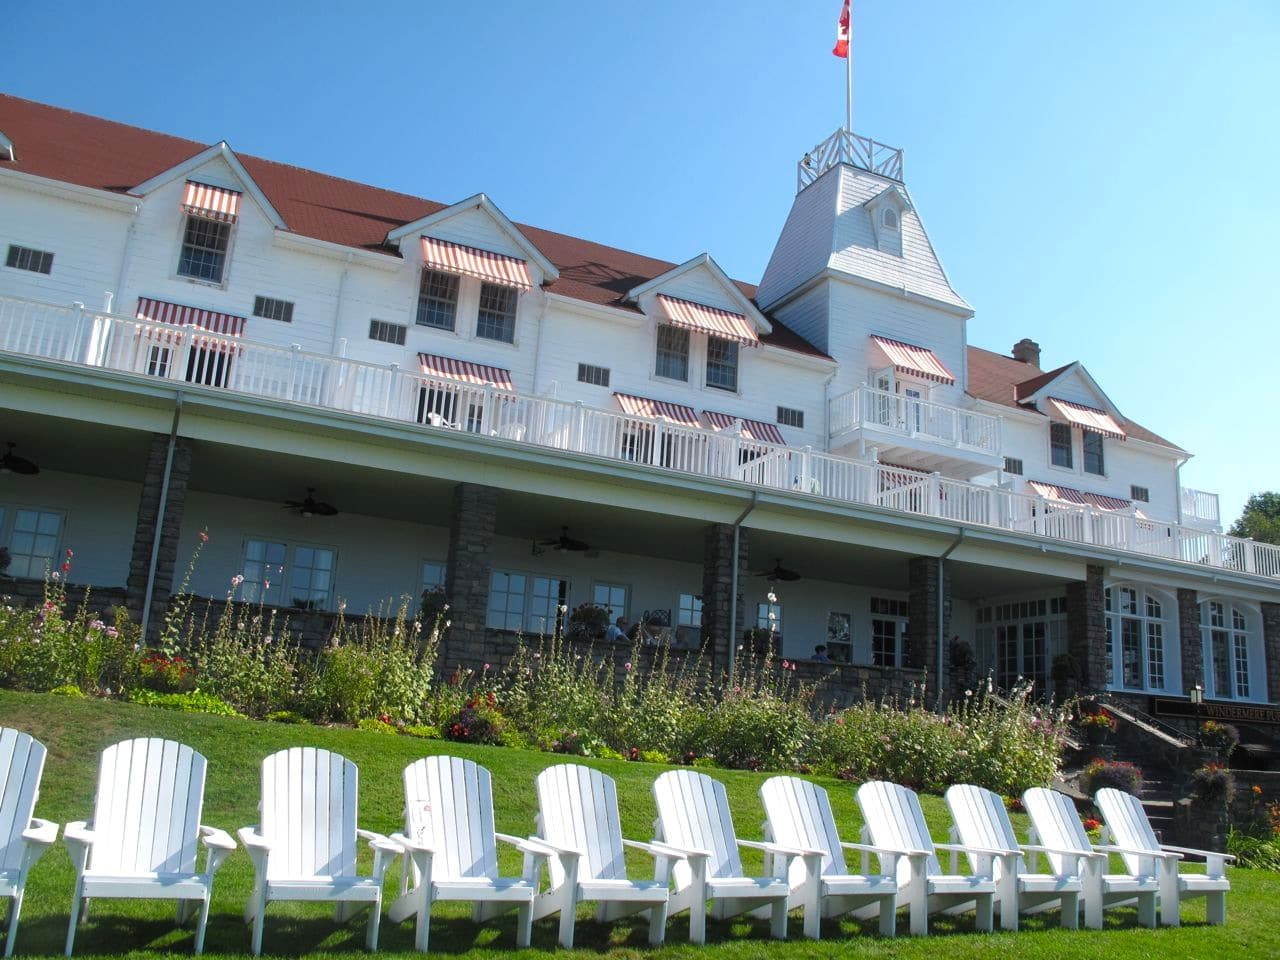 Enjoy a relaxing spa day in Muskoka at the historic boutique hotel, Windermere House.